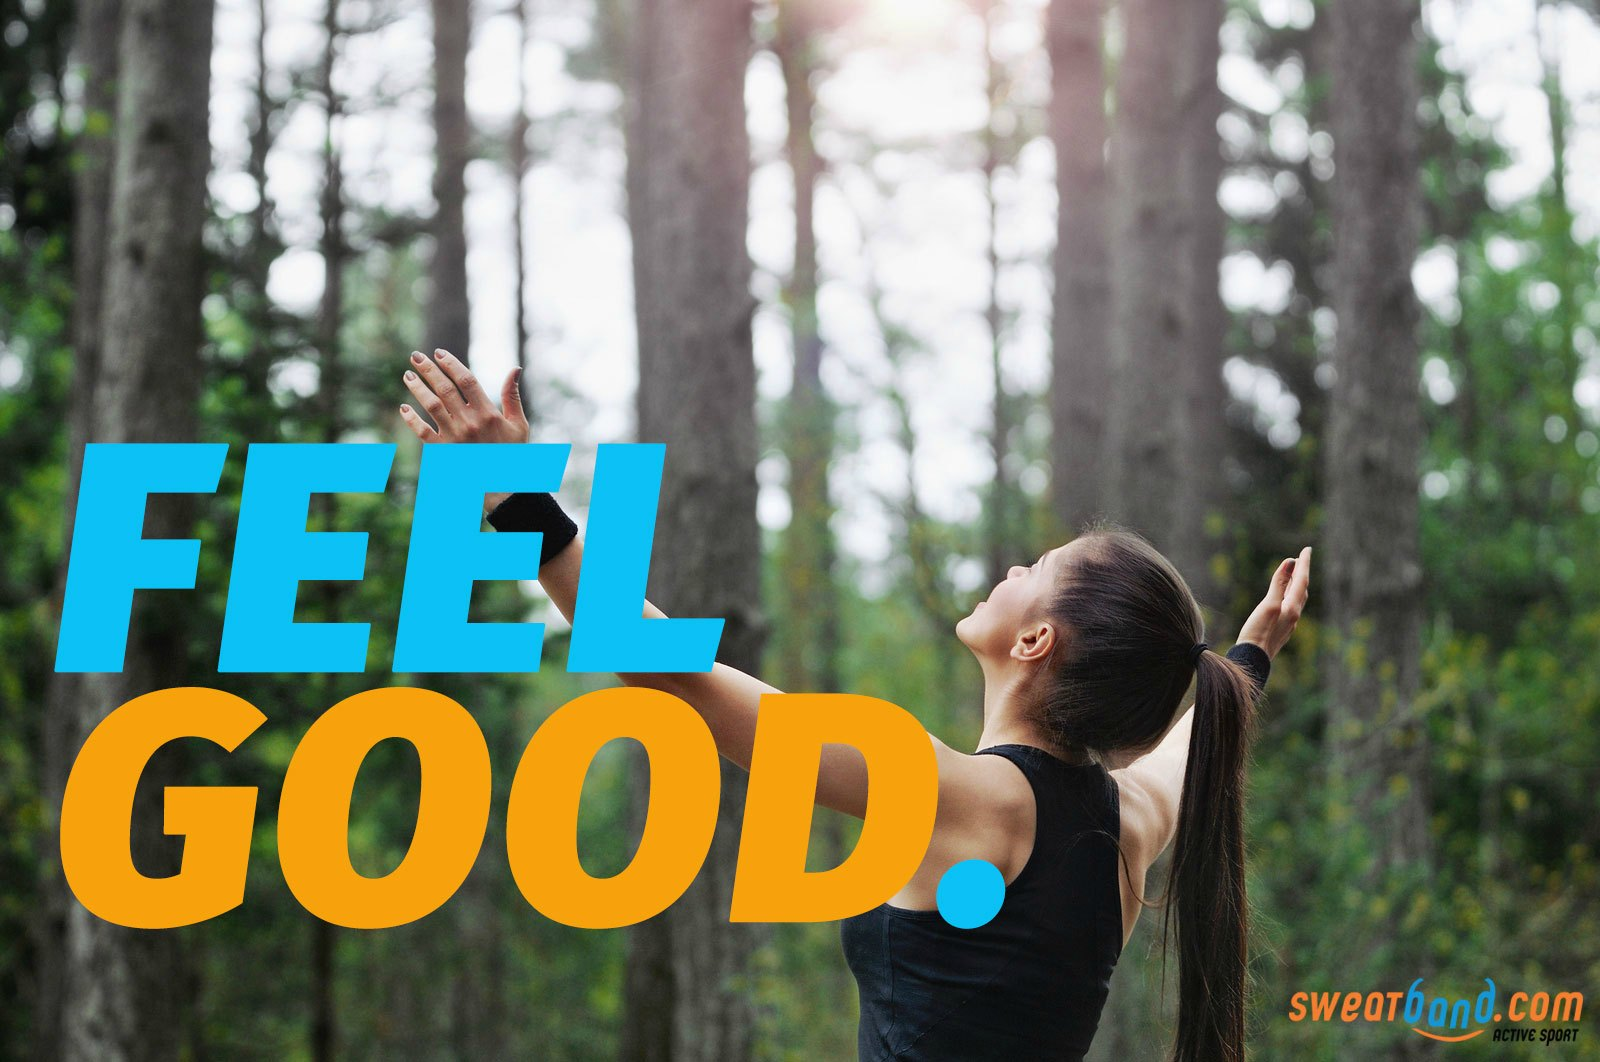 Try taking your workout outdoors to help your mind and body feel good